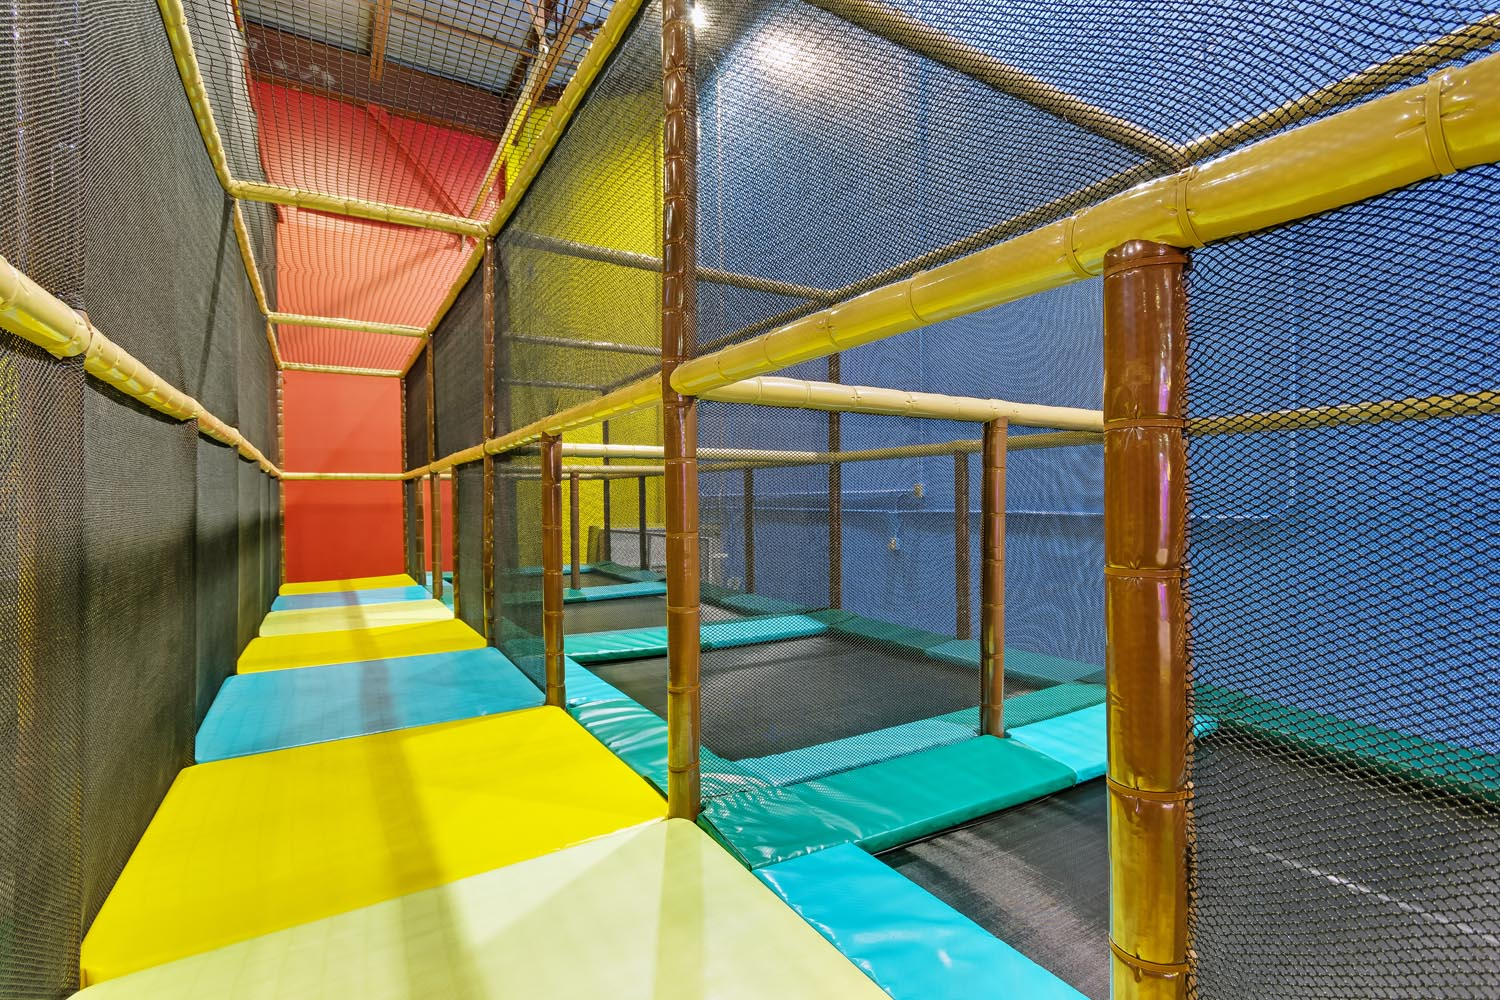 15,000 Square Feet of Family Fun at Playtopia Indoor Playground